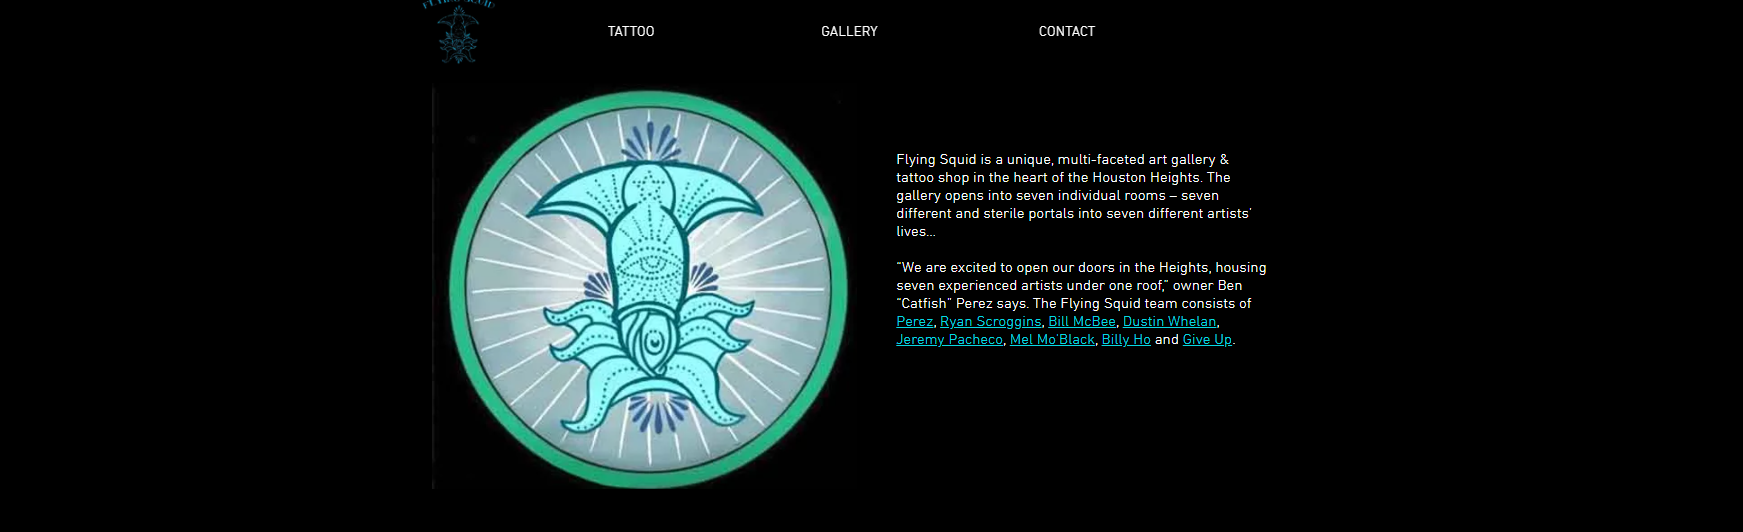 Flying Squid Art Gallery & Tattooing